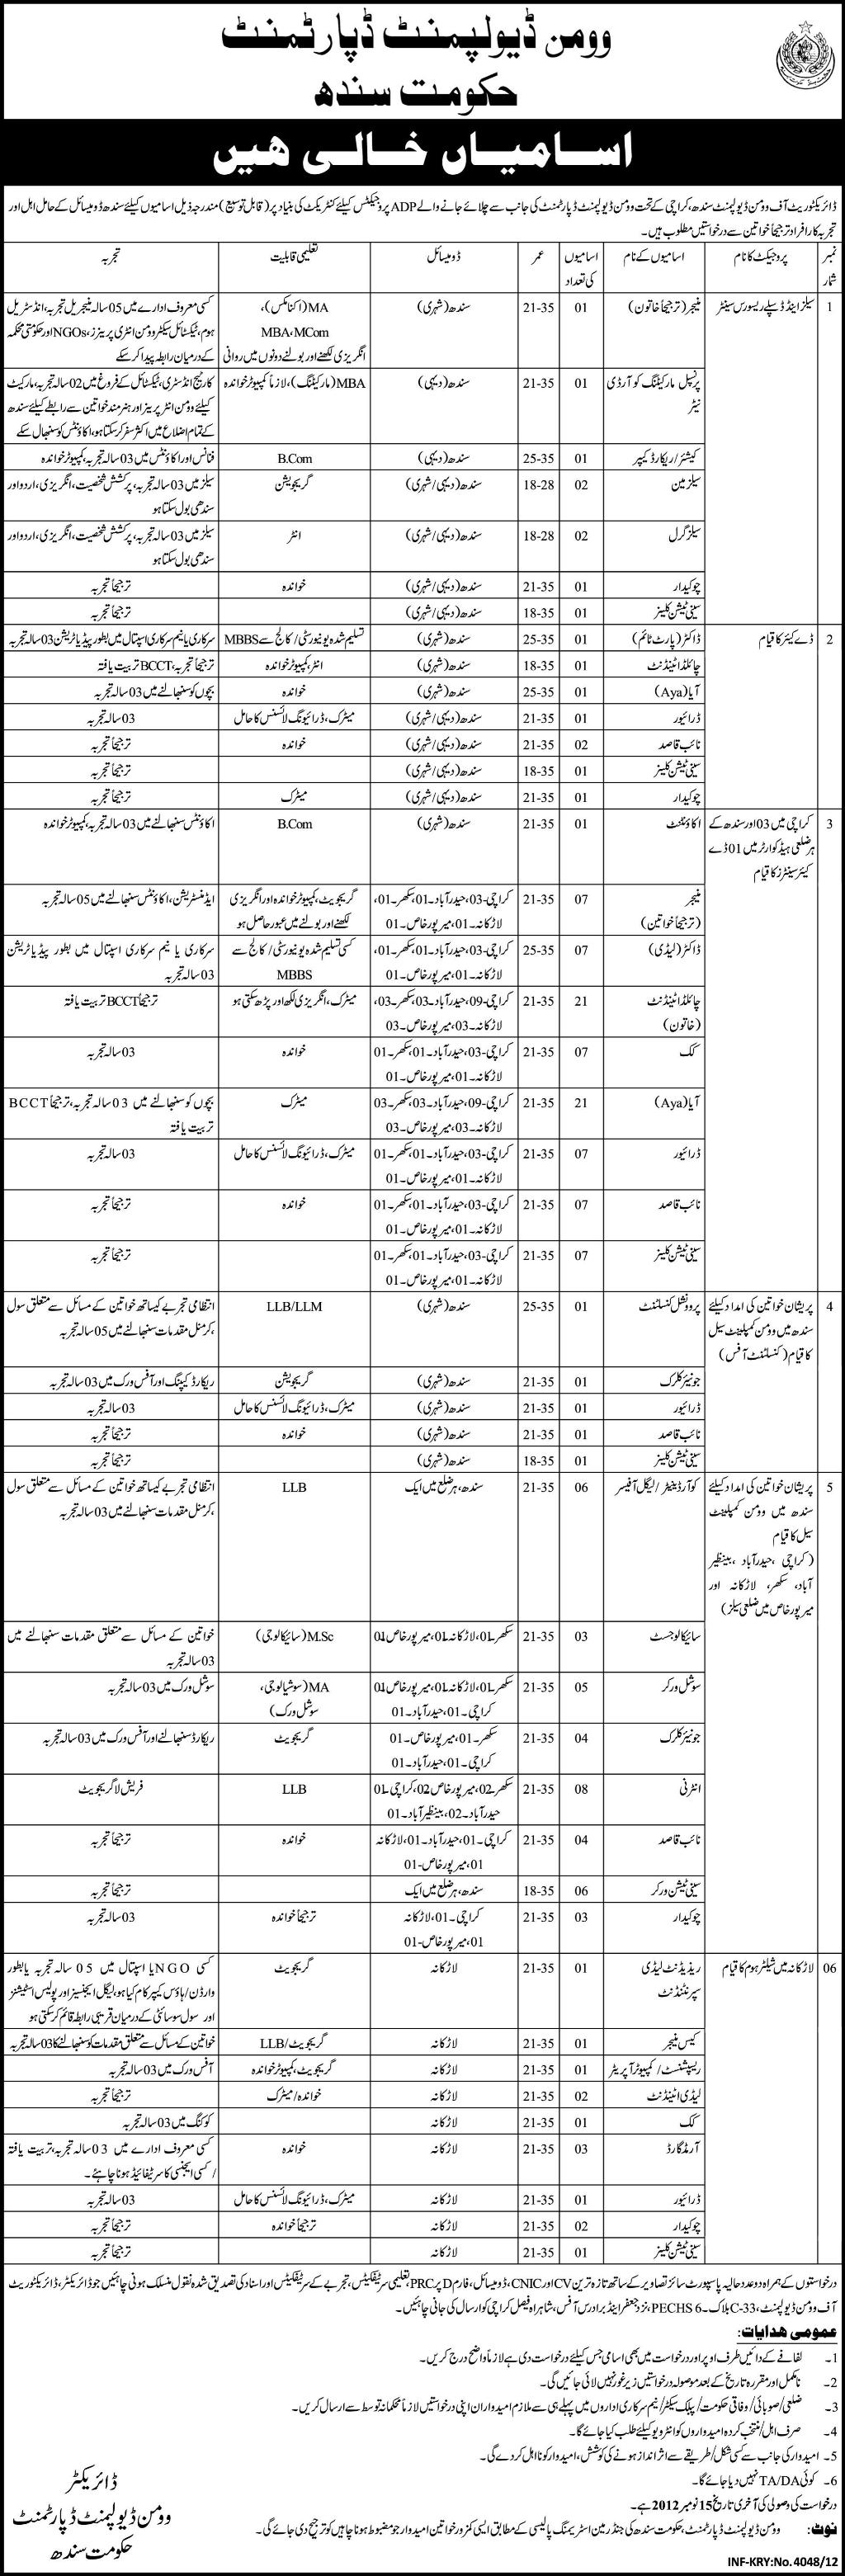 Women Development Department Govt Sindh Karachi Jobs 2012